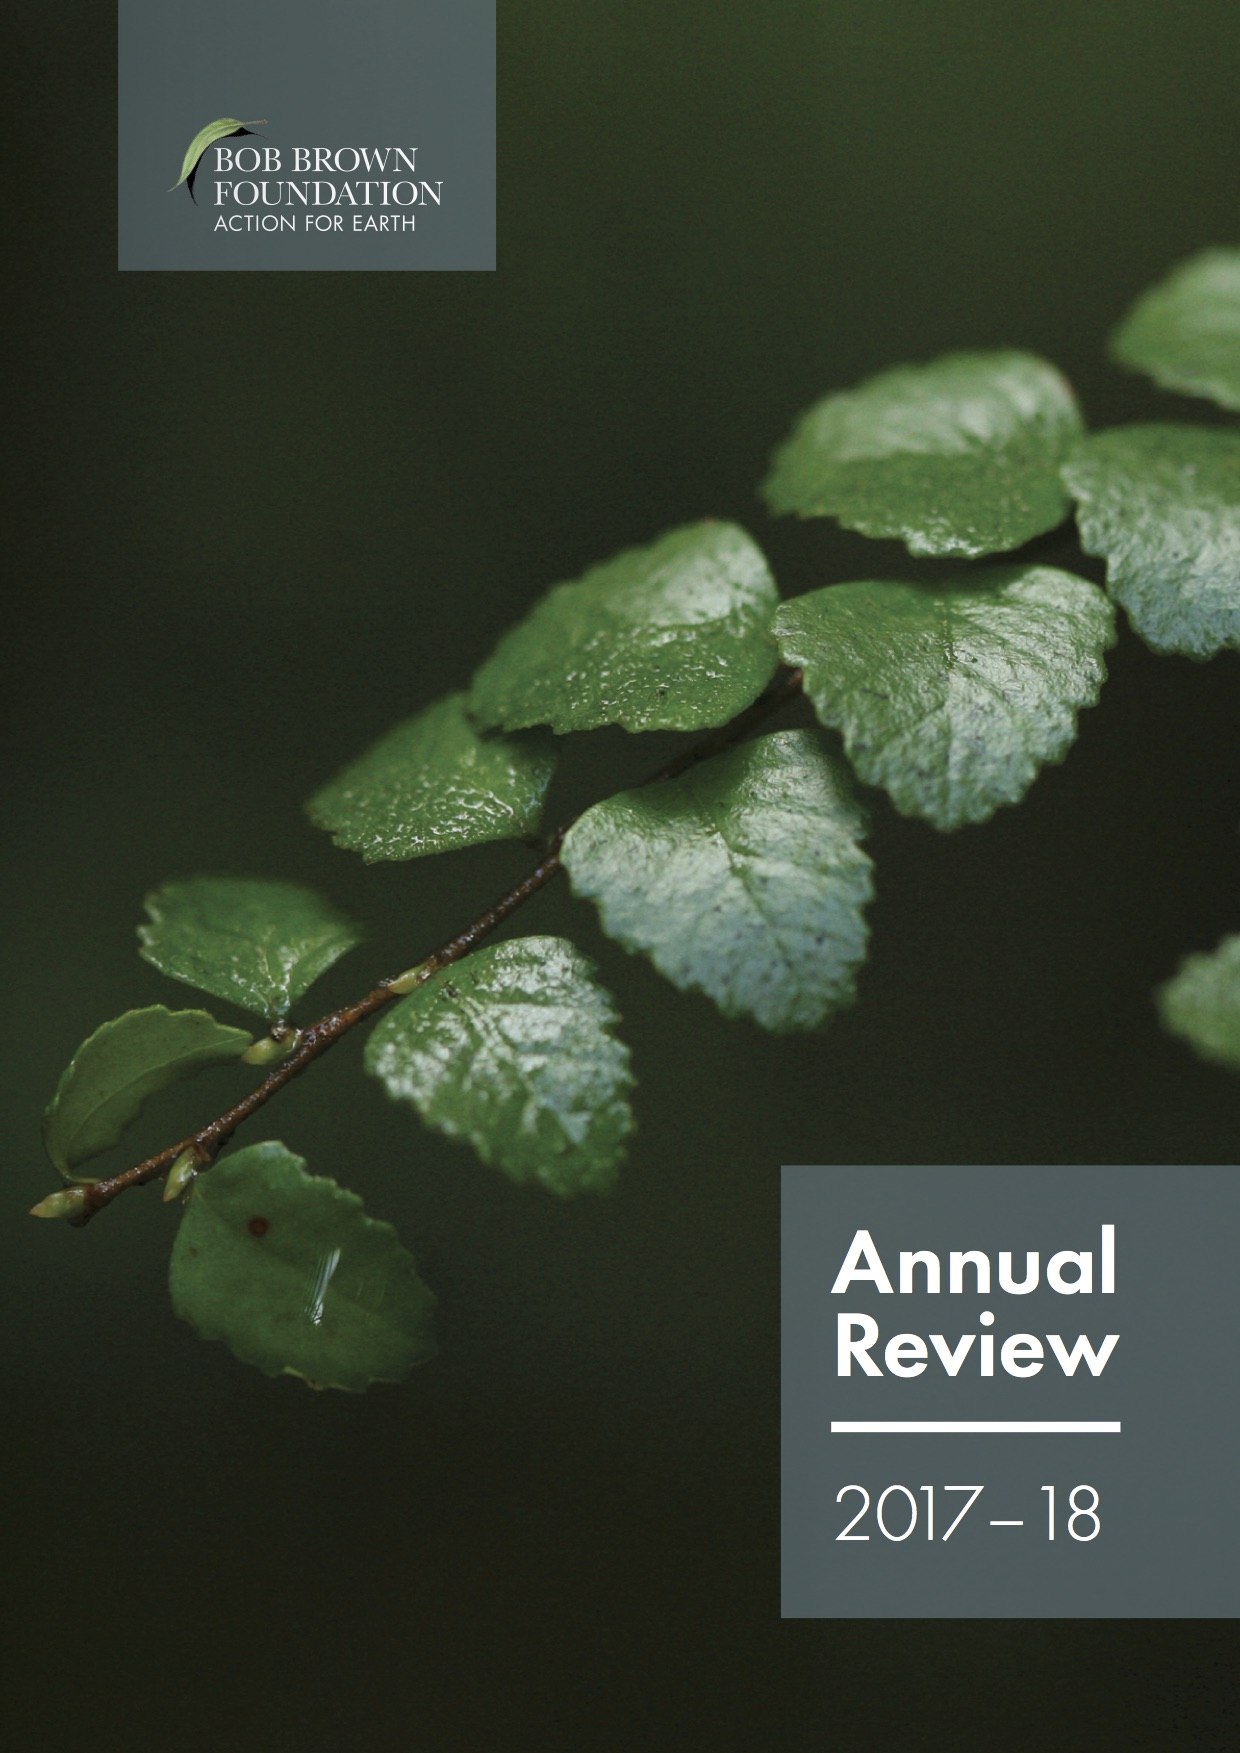 BBF_Design_Org_2018_AnnualReview_Dig_FrontCover_Sml.jpg